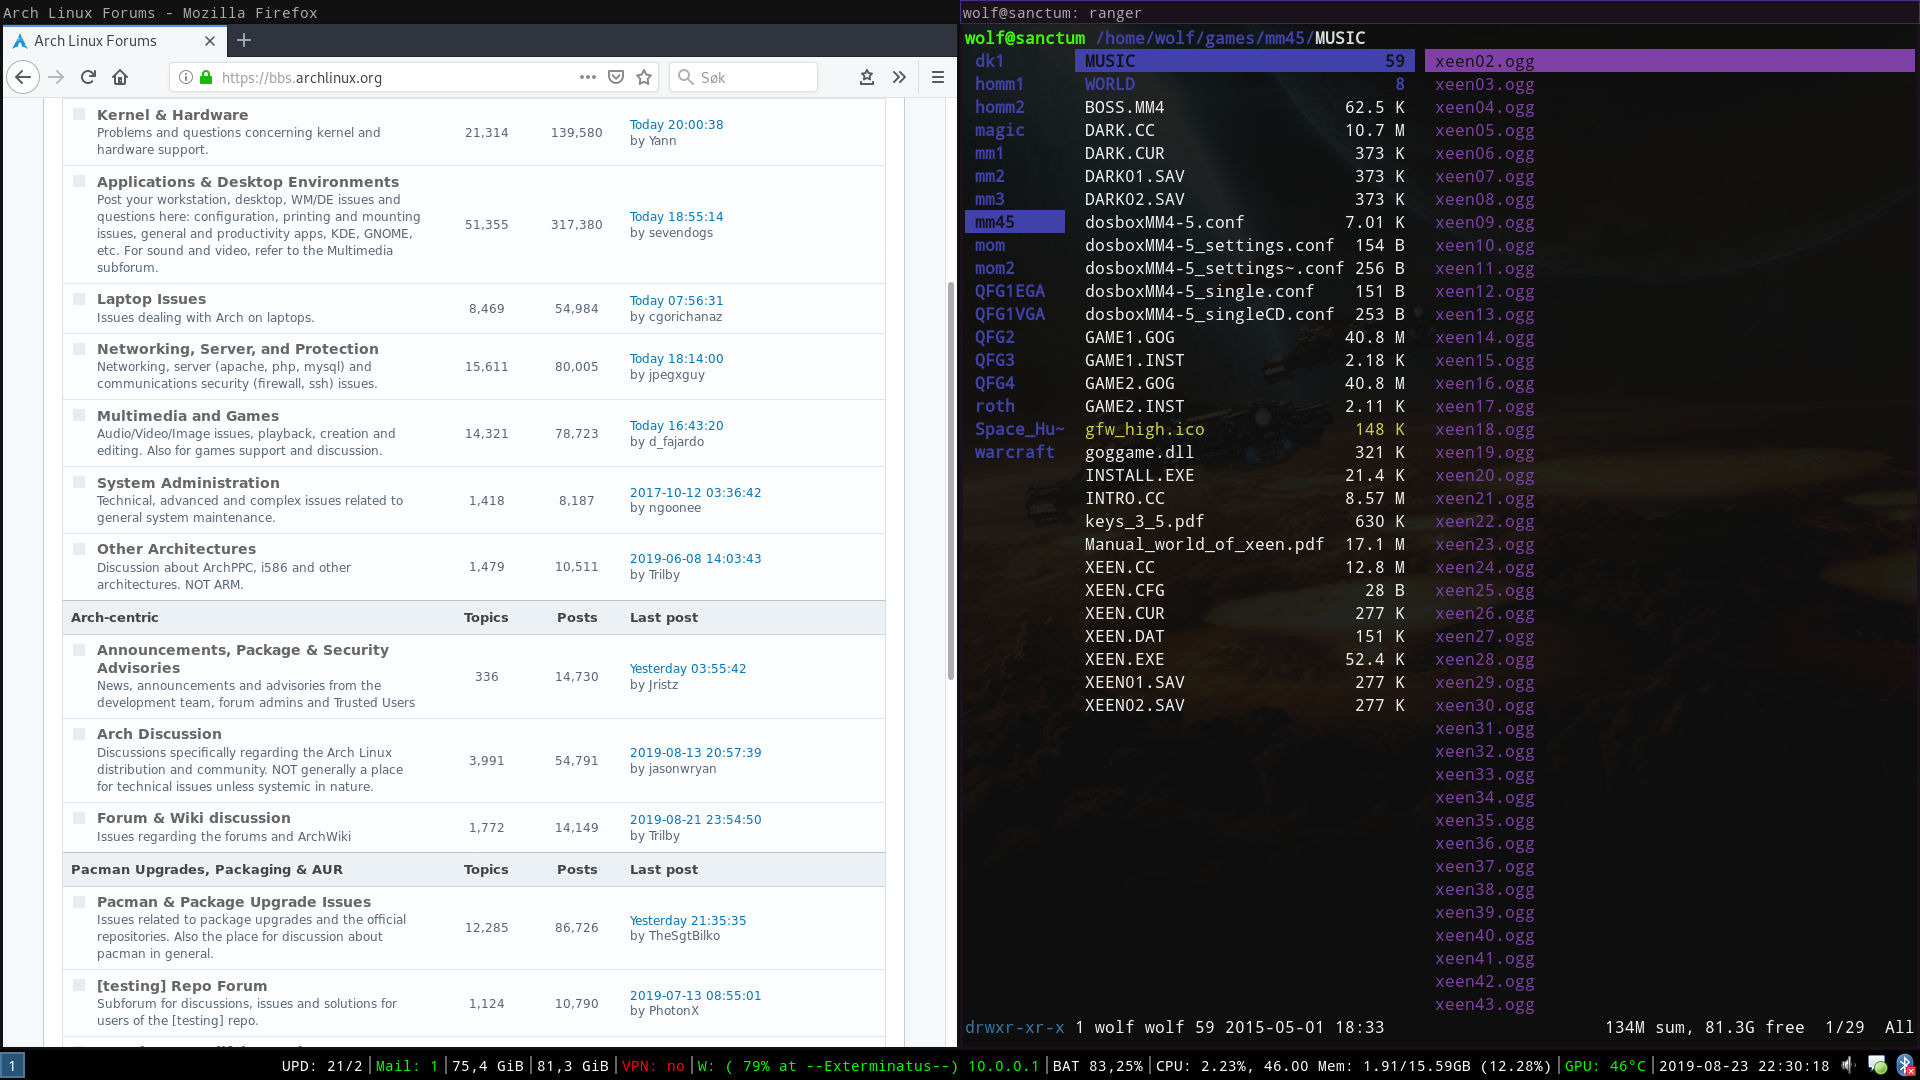 Firefox and terminal with ranger open